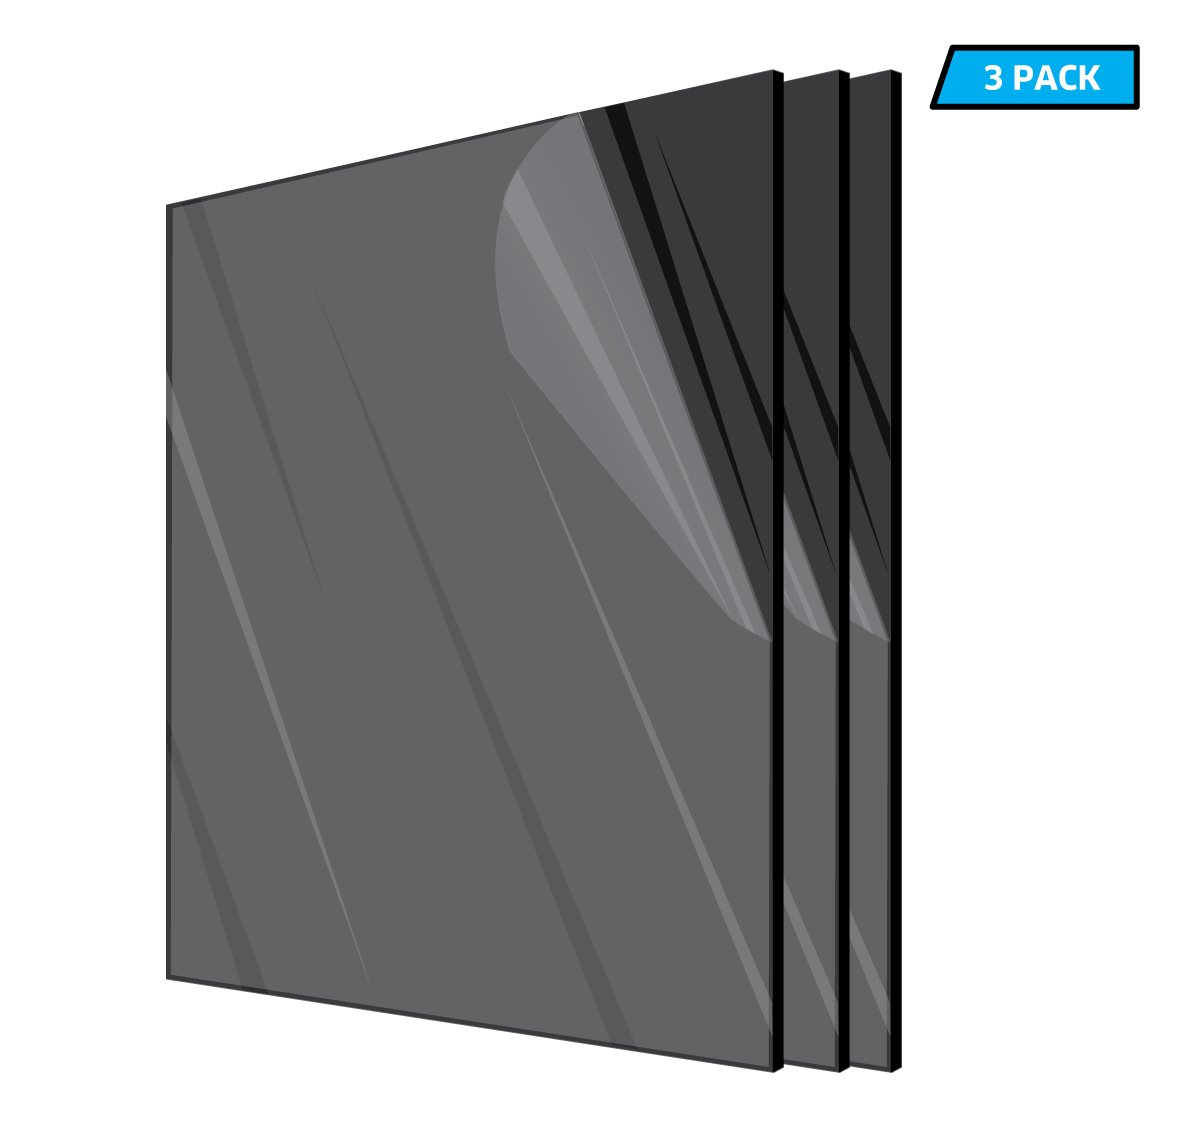 AdirOffice Acrylic Plexiglass Sheet - Durable, Water Resistant & Weatherproof - Multipurpose & Ideal For Countless Uses 12''x12'' 1/8th thick - 3 Pack, Black